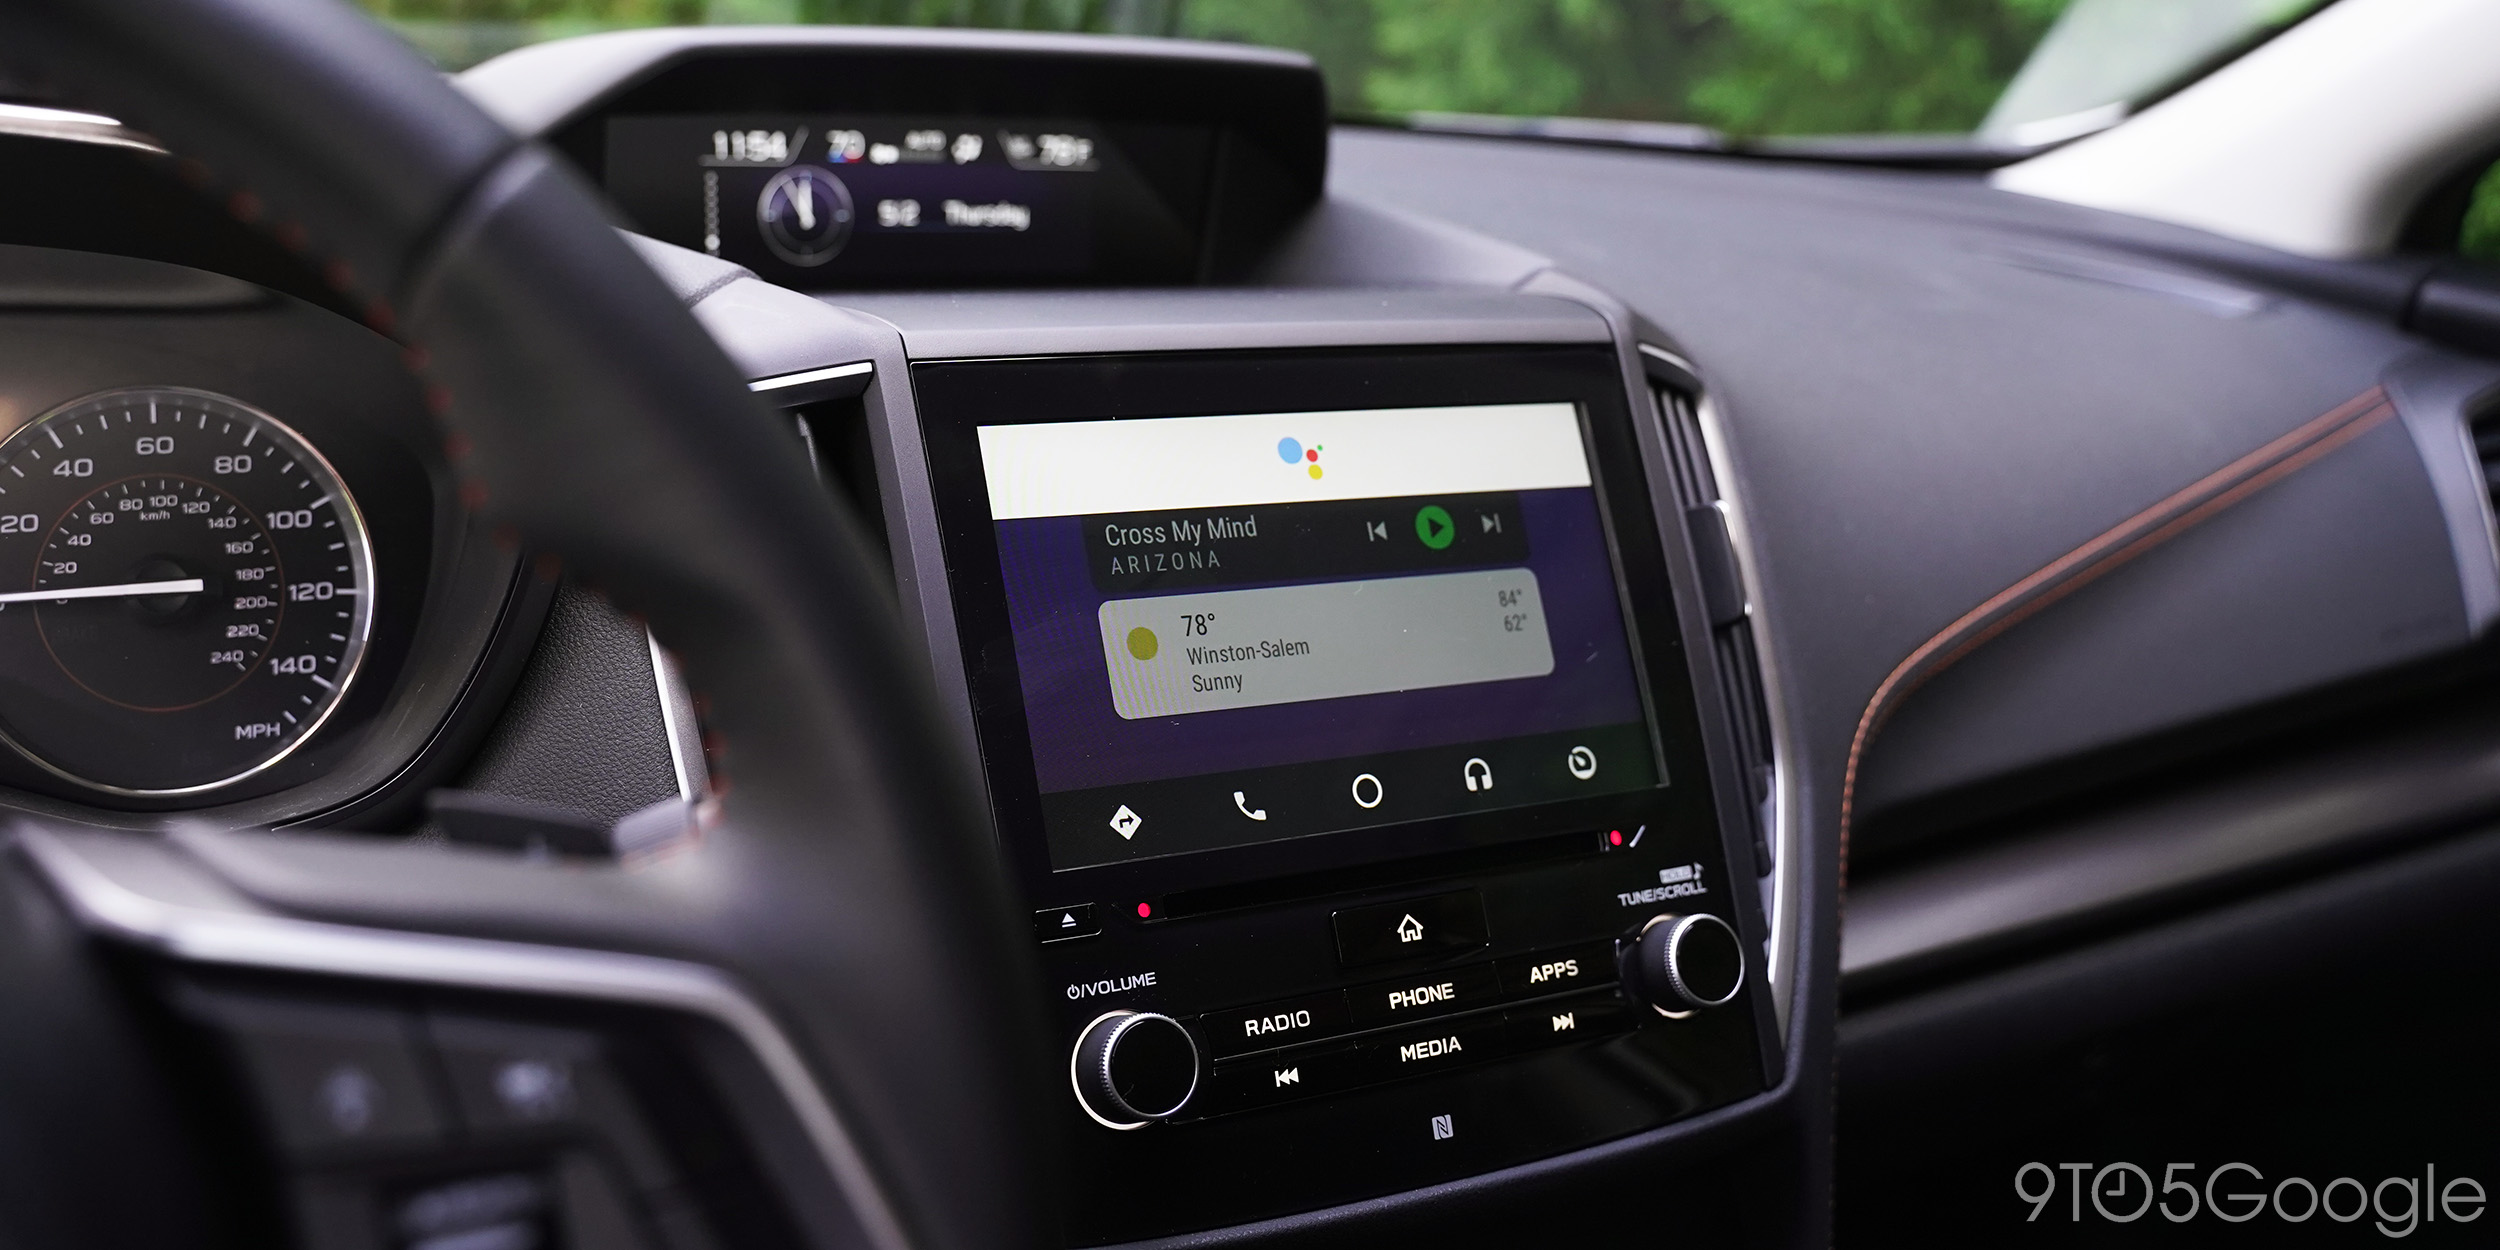 Android Auto expands to Denmark, Finland, and more - 9to5Google